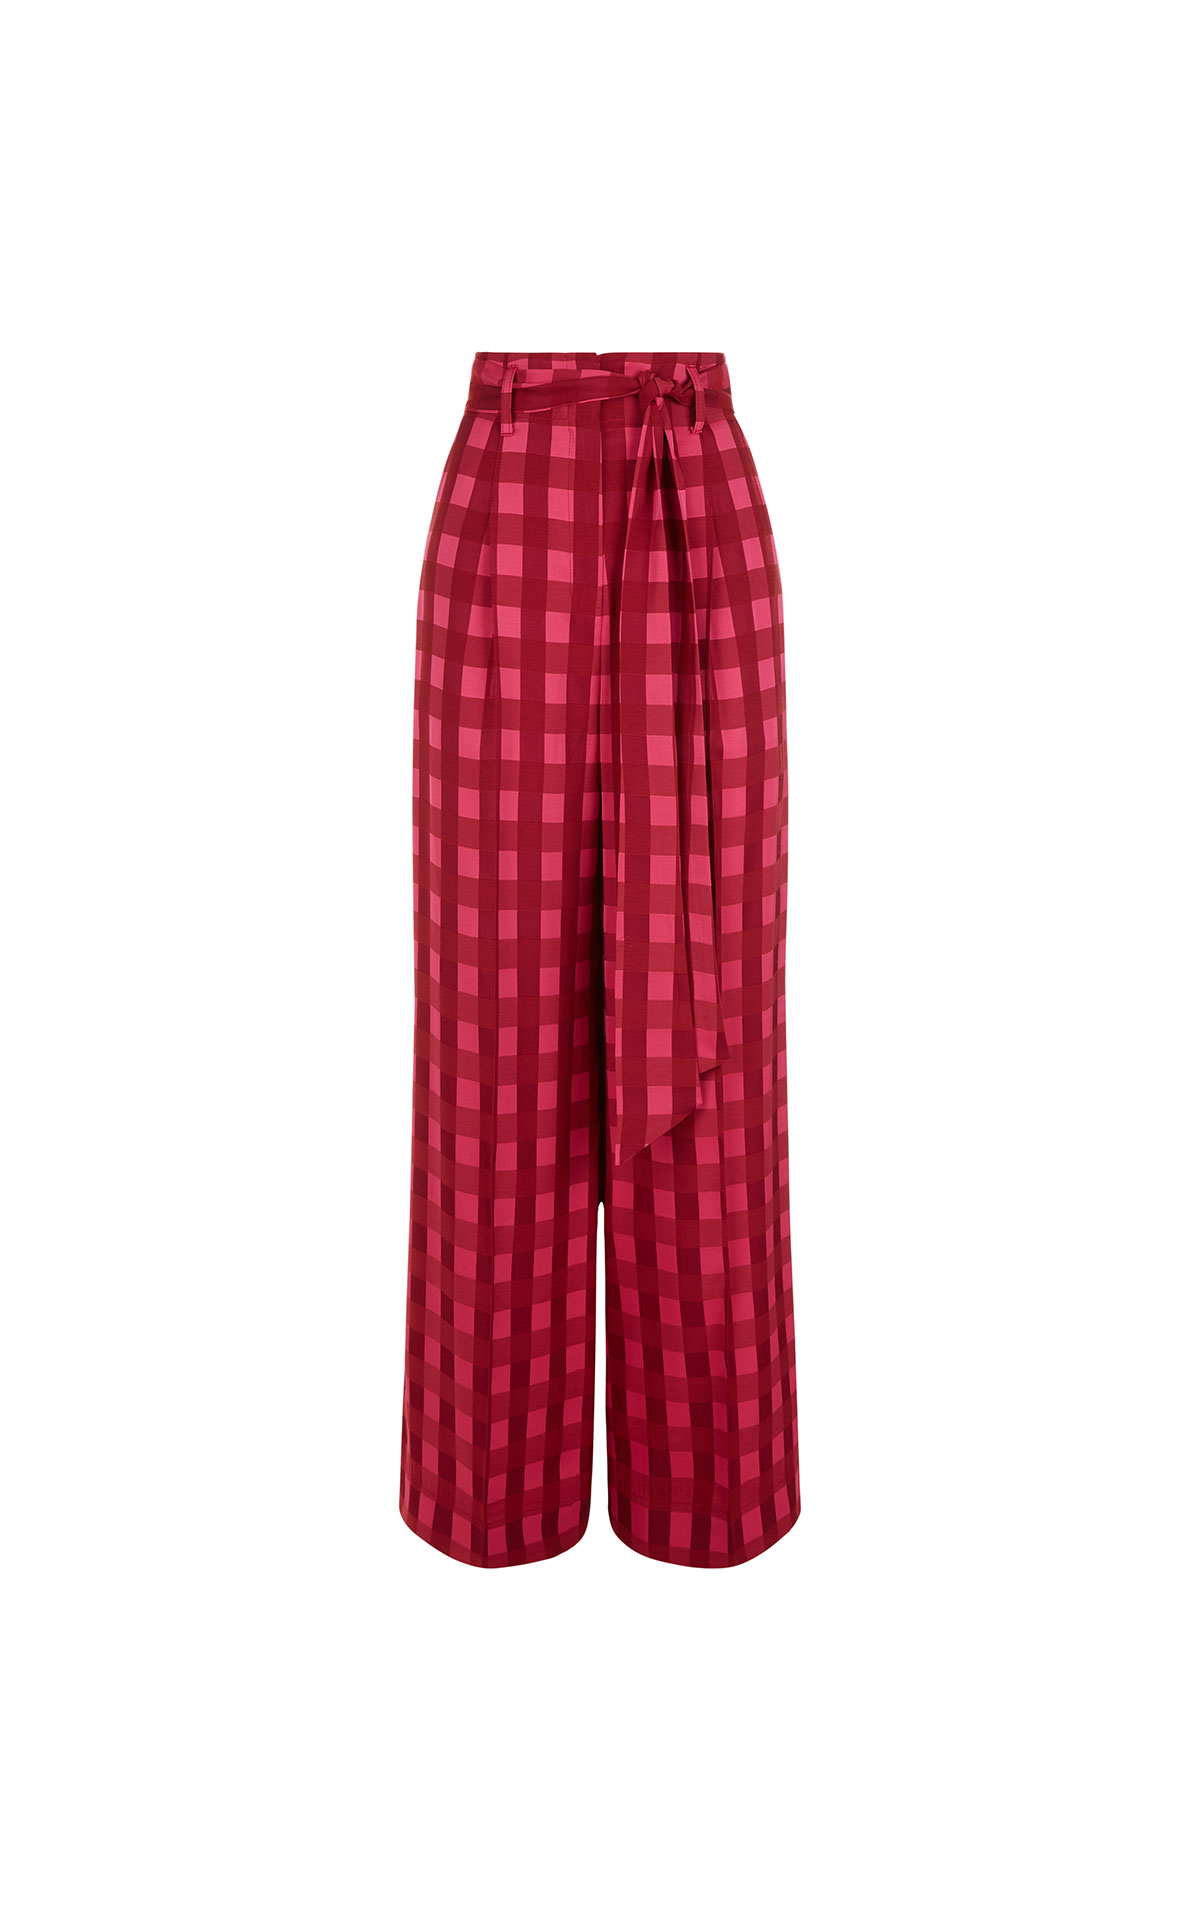 Temperley London Stirling trousers from Bicester Village